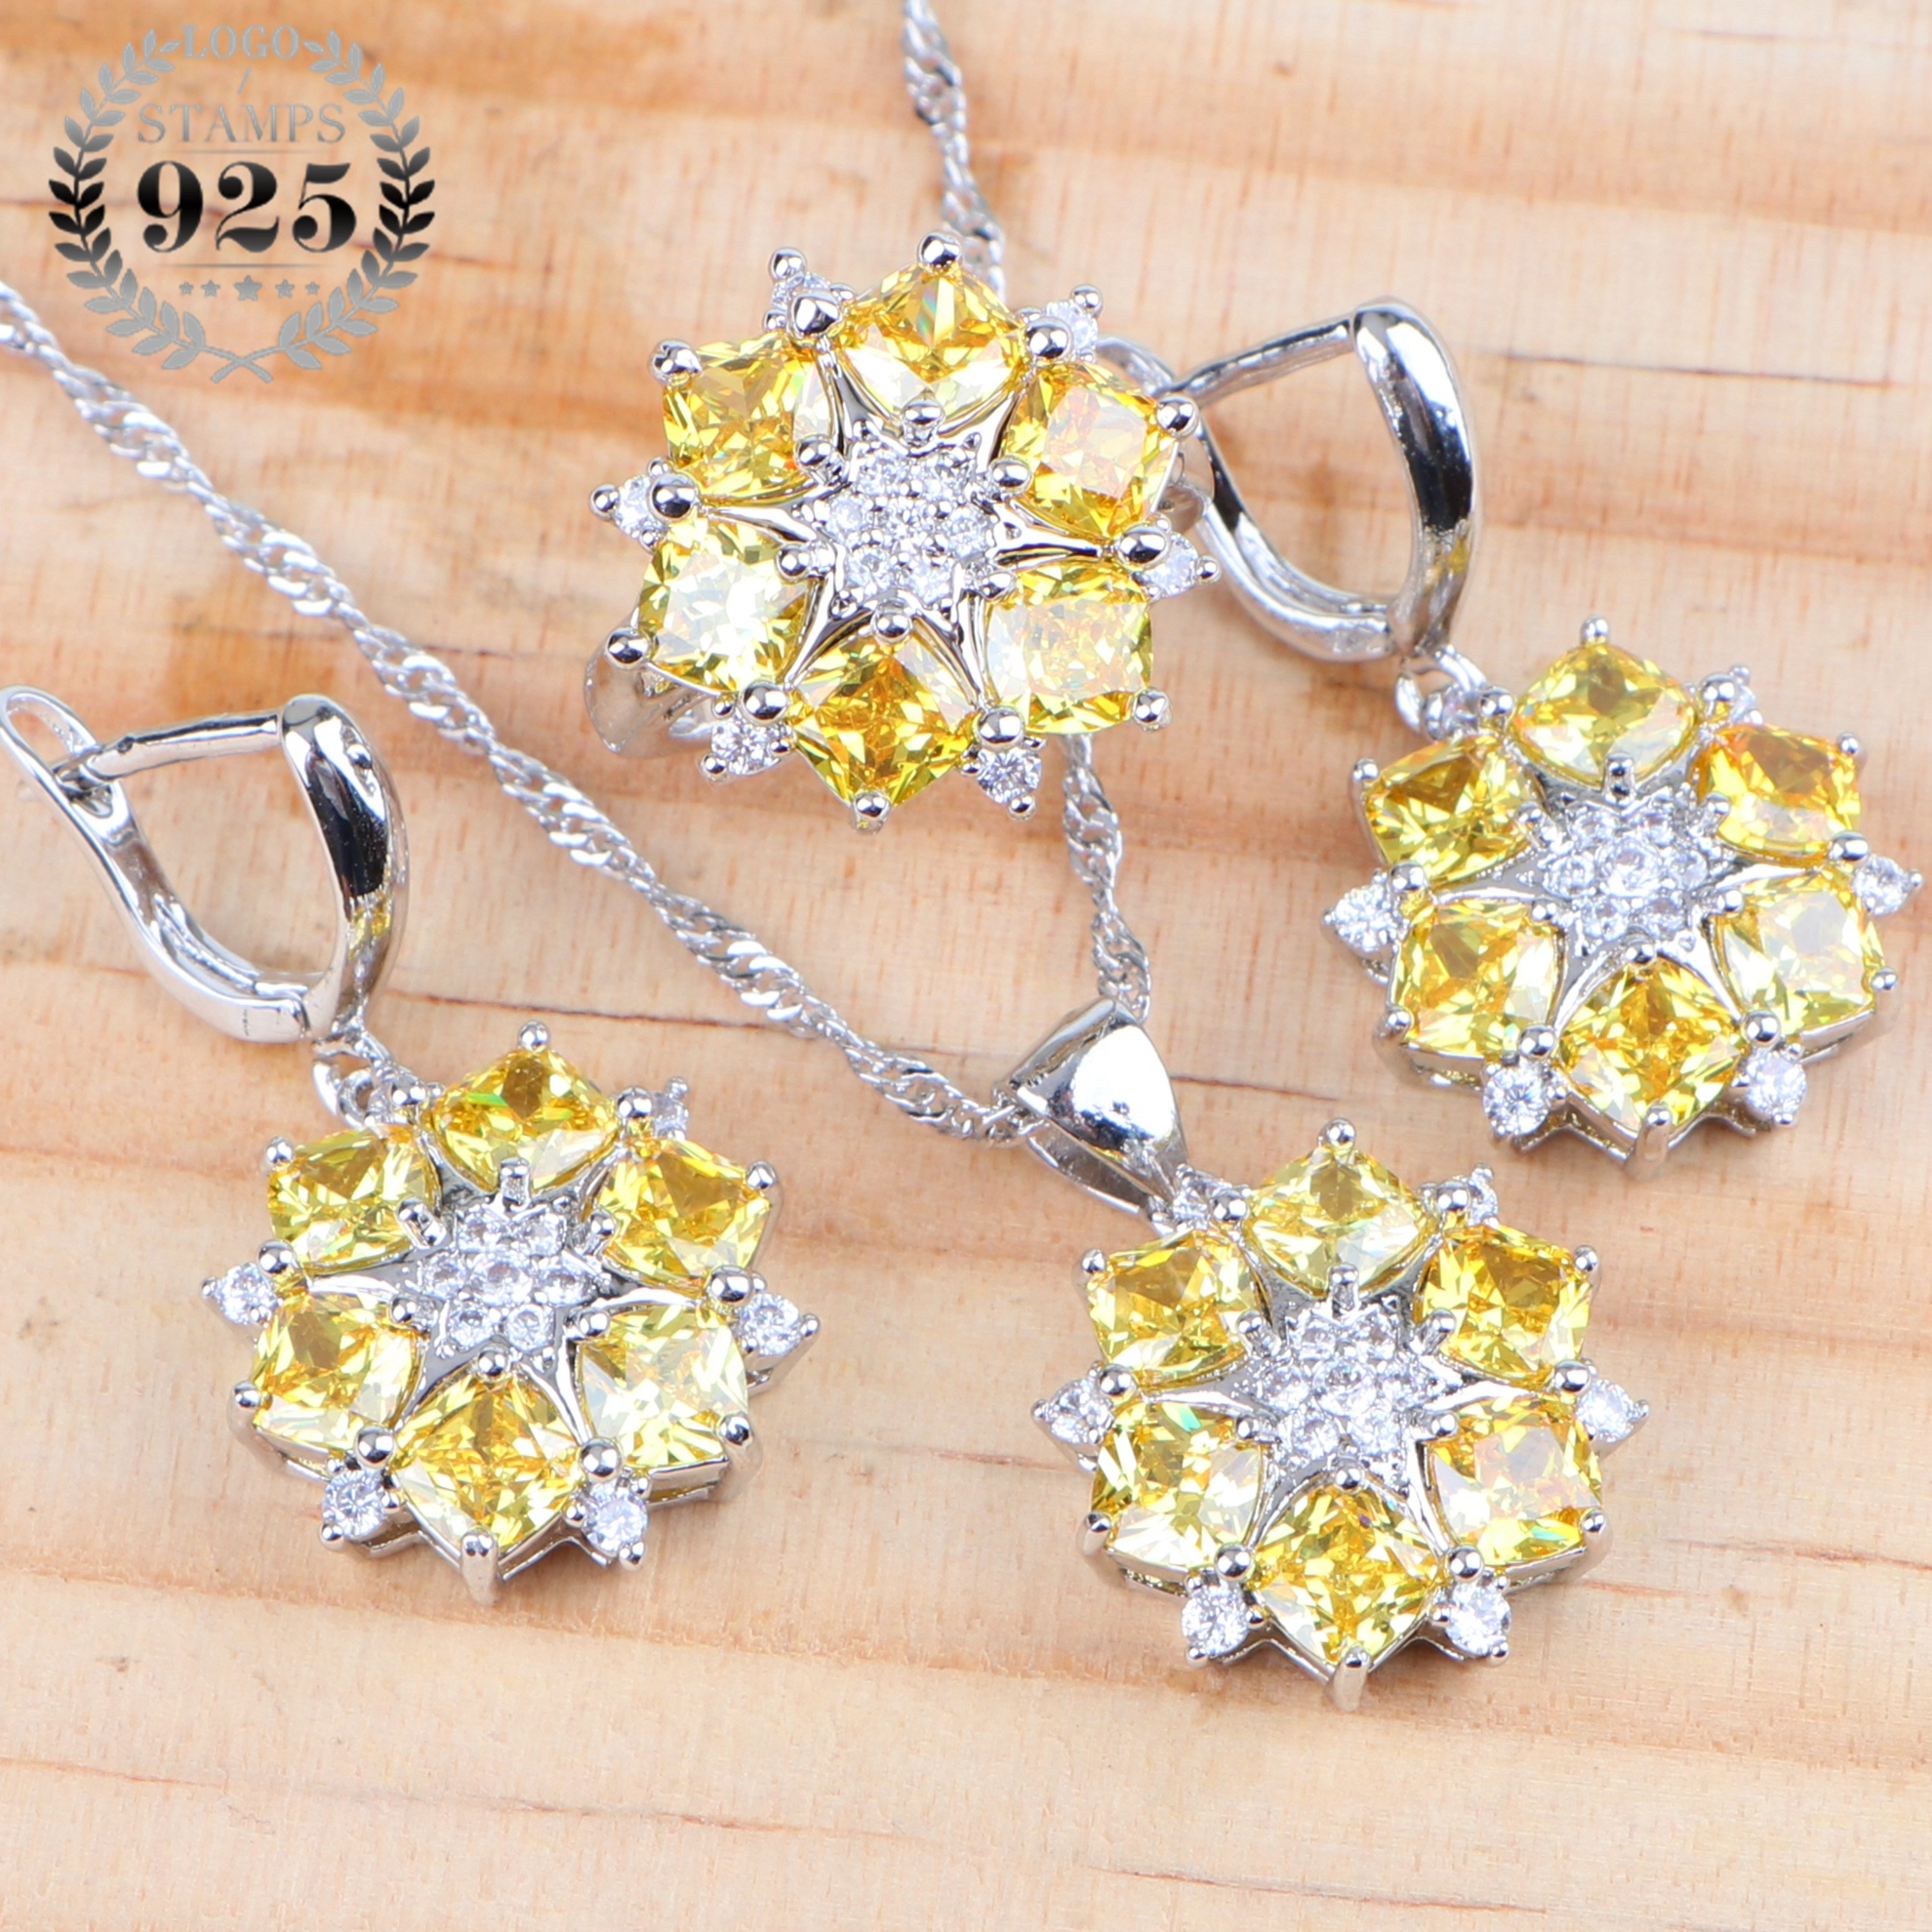 Bridal Yellow Cubic Zirconia Silver 925 Jewelry Sets Costume Earrings Pendant Wedding Necklace Rings For Women Set Gift Box